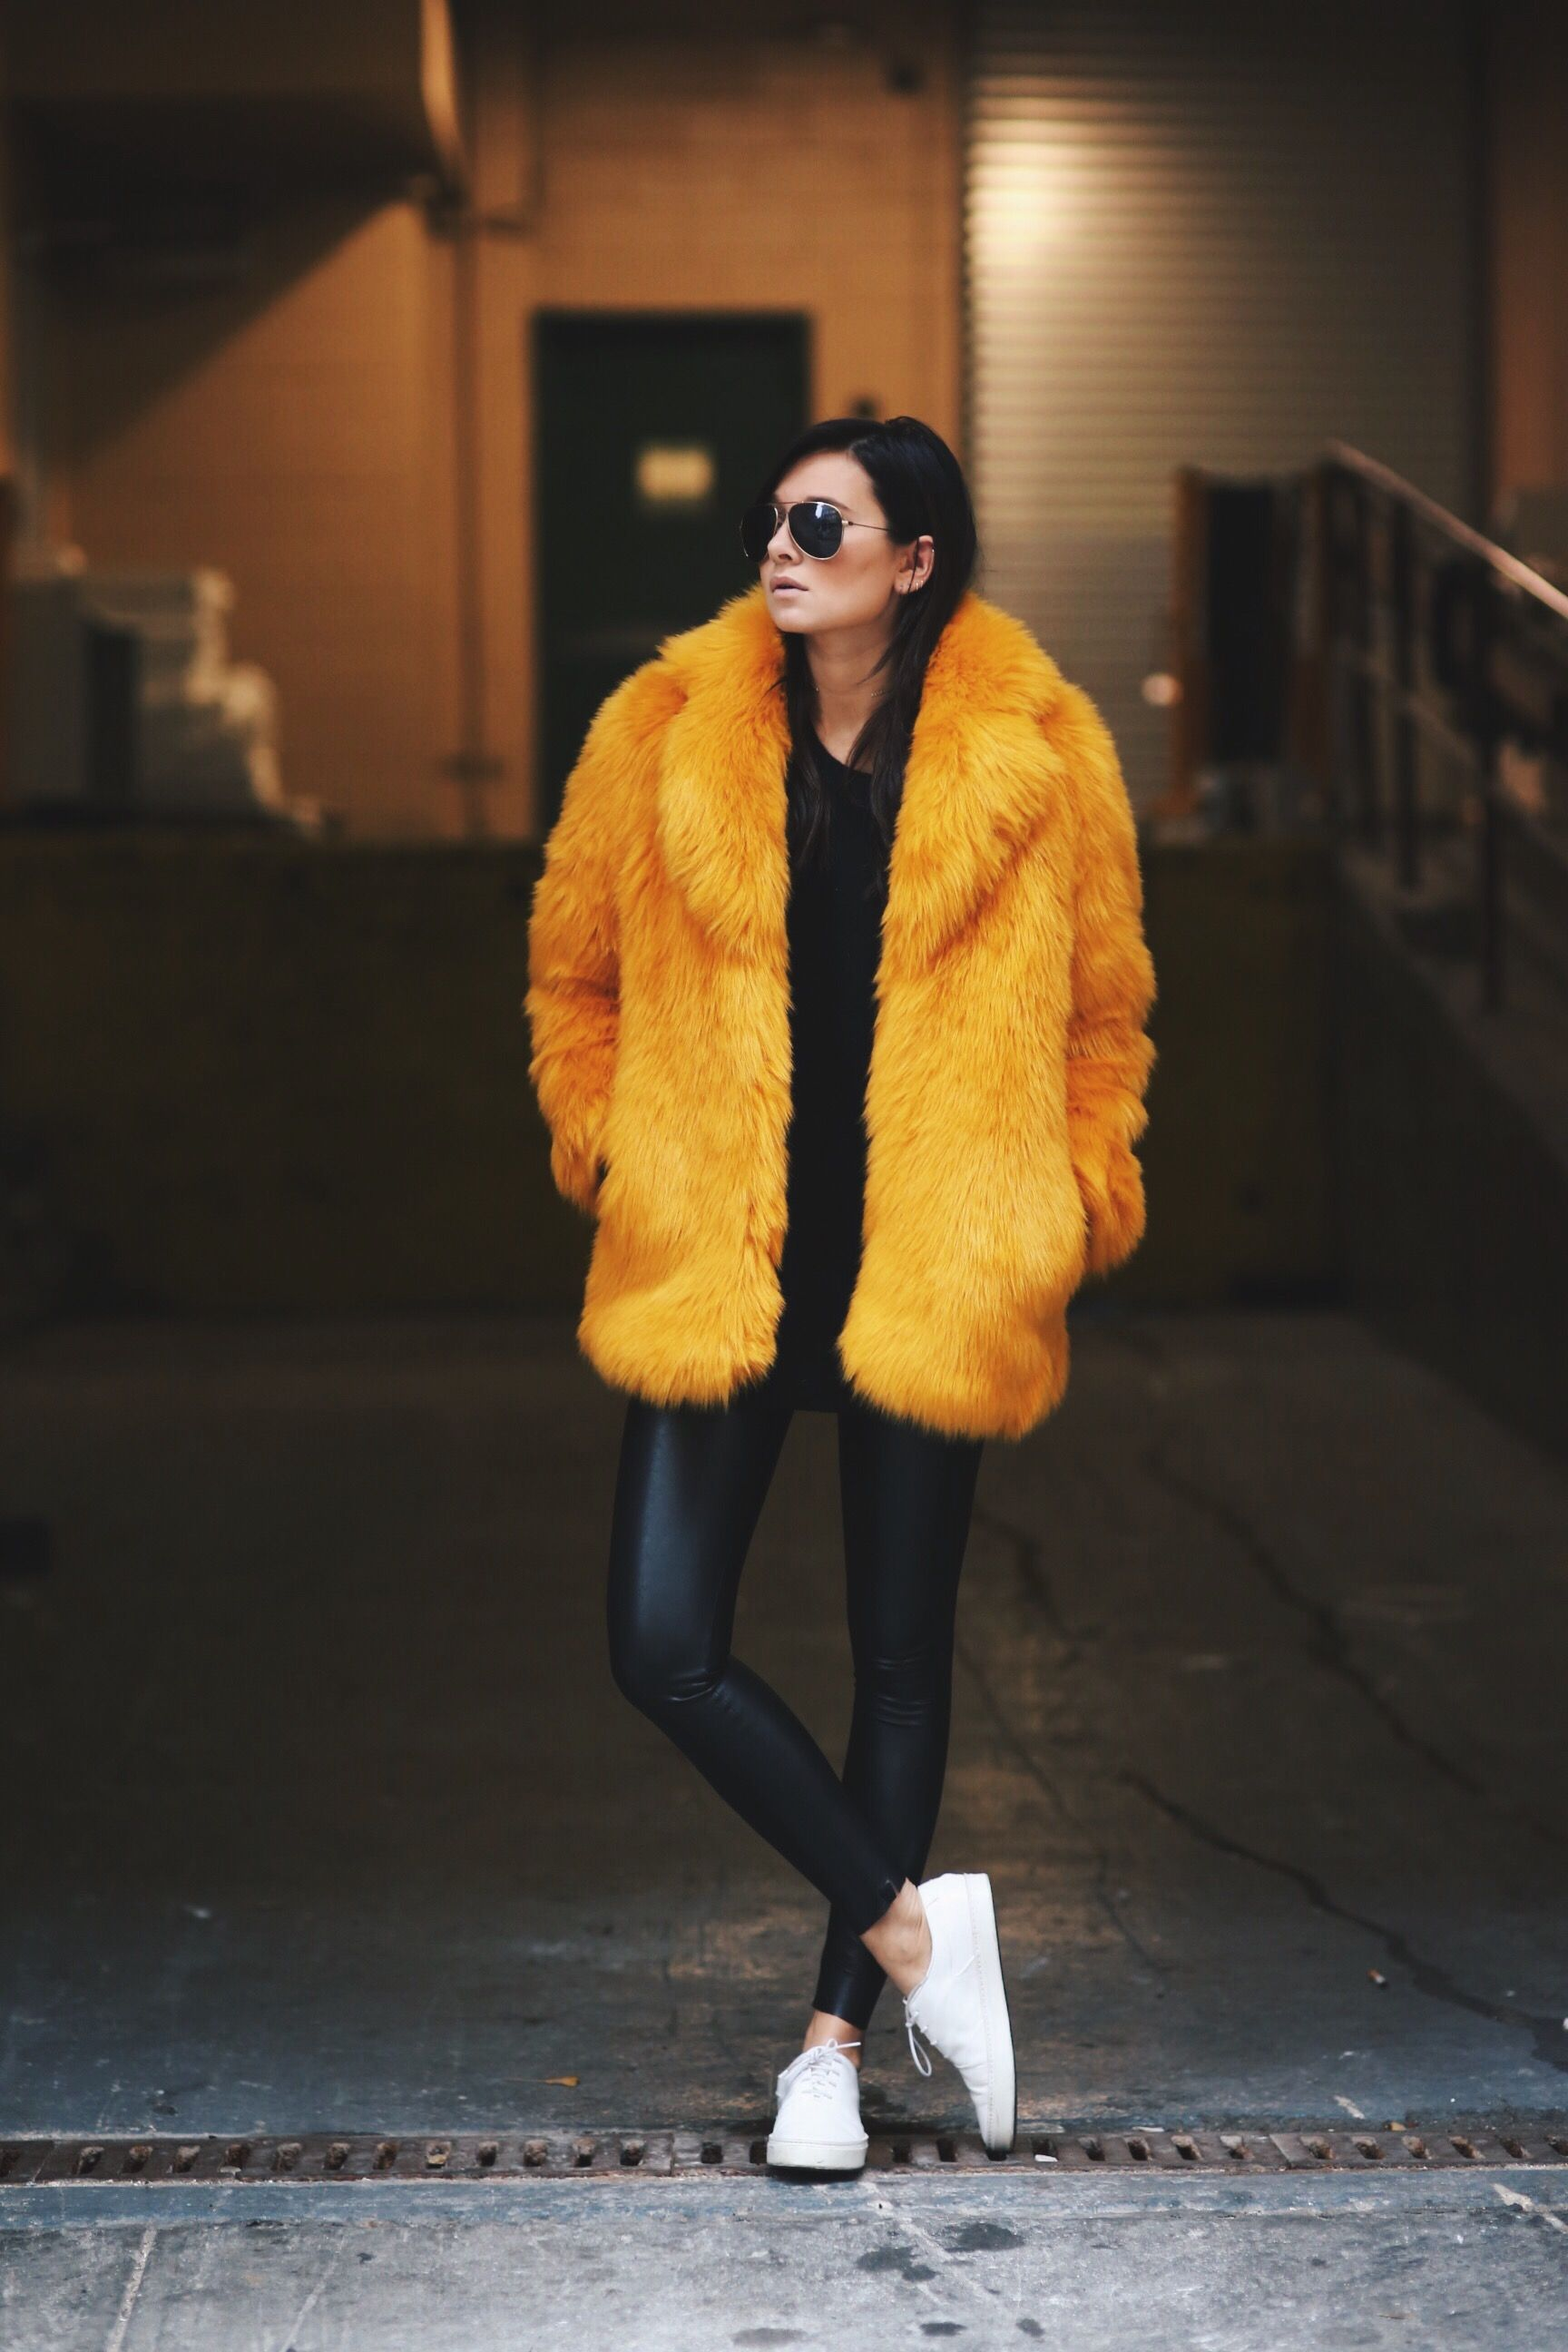 723b660b3b594 9 Outfits You Can Wear With Your Leggings | OUTFIT INSPO | Fashion ...